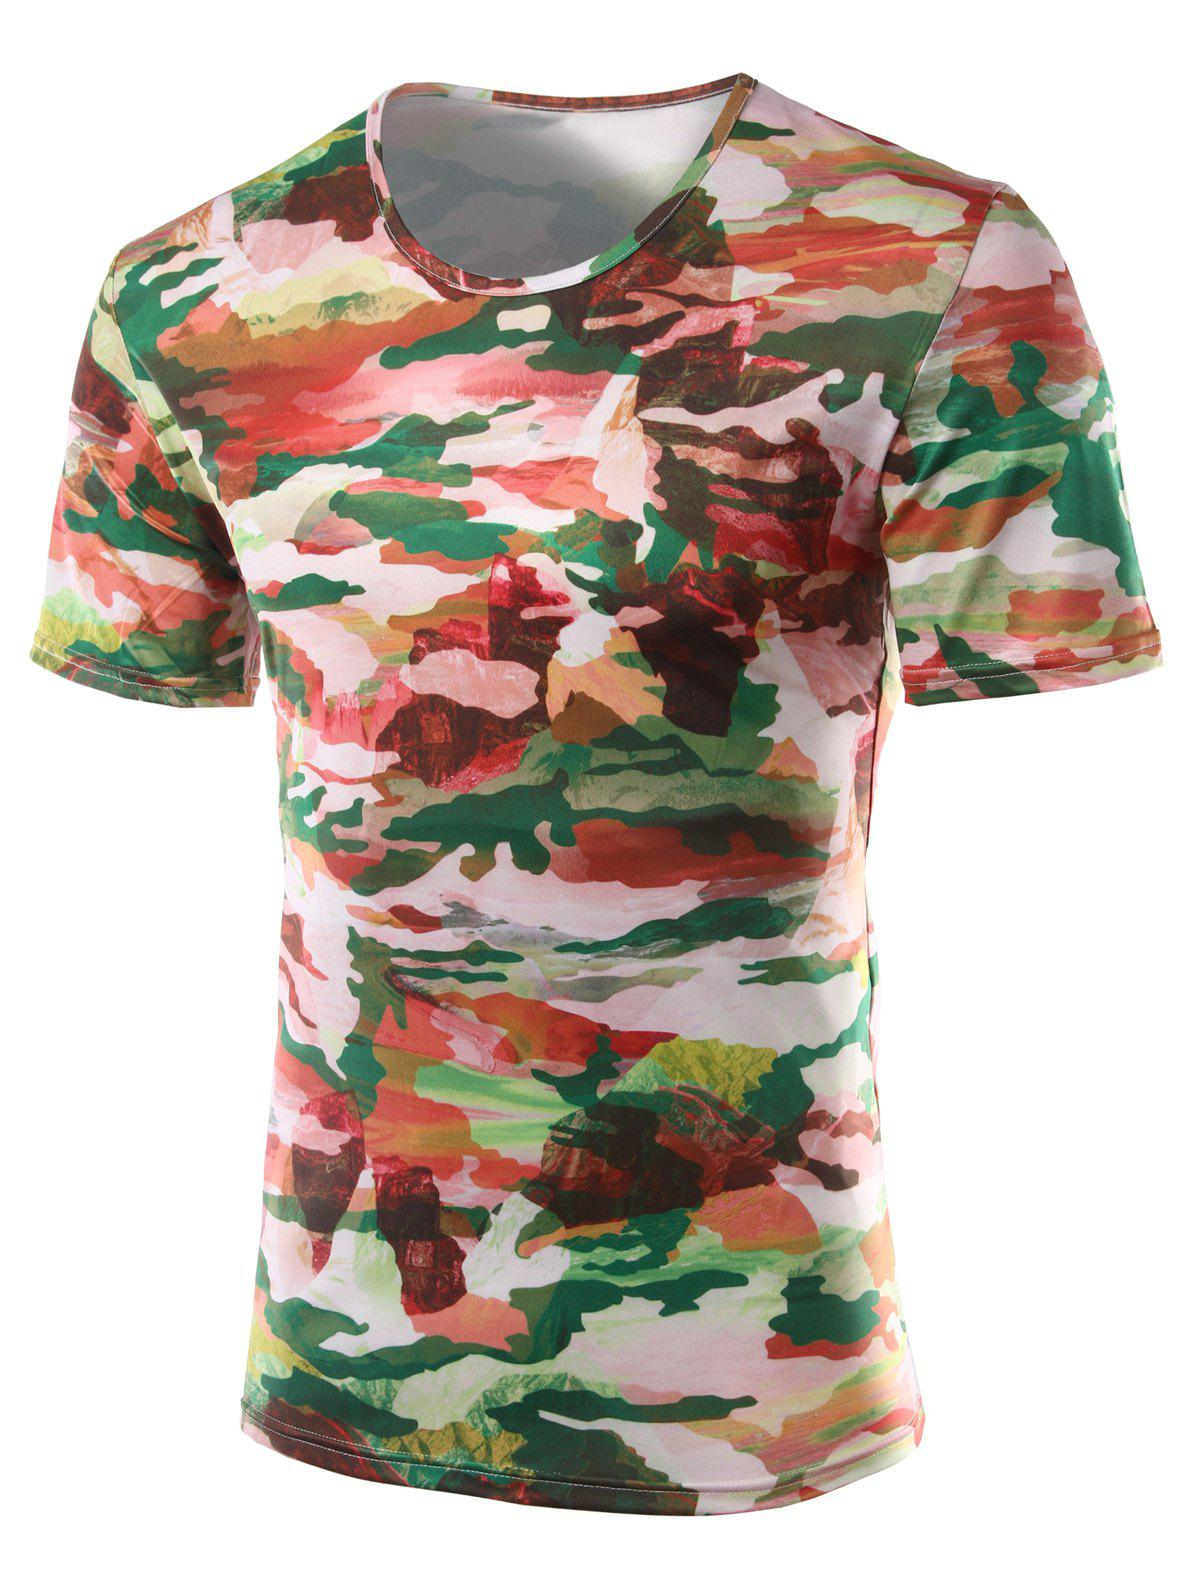 Slim Fit Printed Round Collar Short Sleeves T-Shirts For MenMen<br><br><br>Size: M<br>Color: COLORMIX